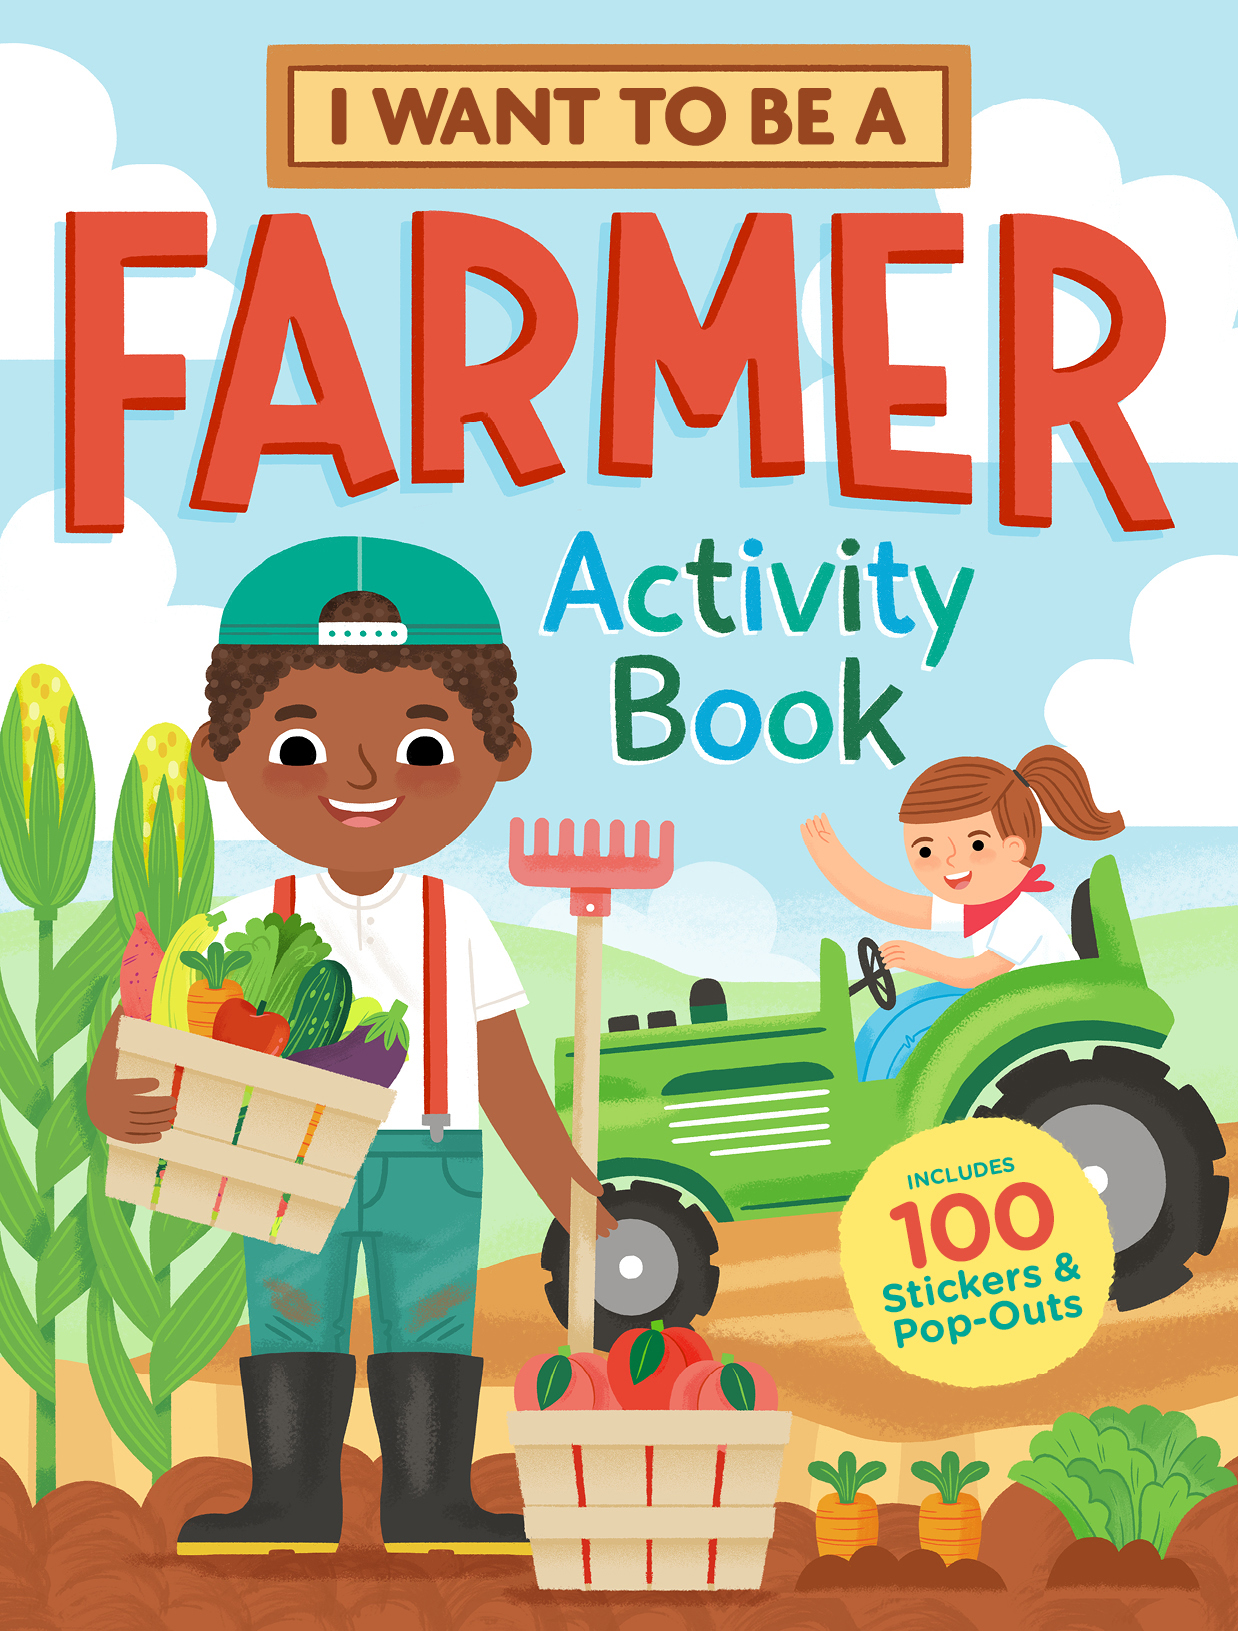 I Want to Be a Farmer Activity Book 100 Stickers & Pop-Outs - Editors of Storey Publishing